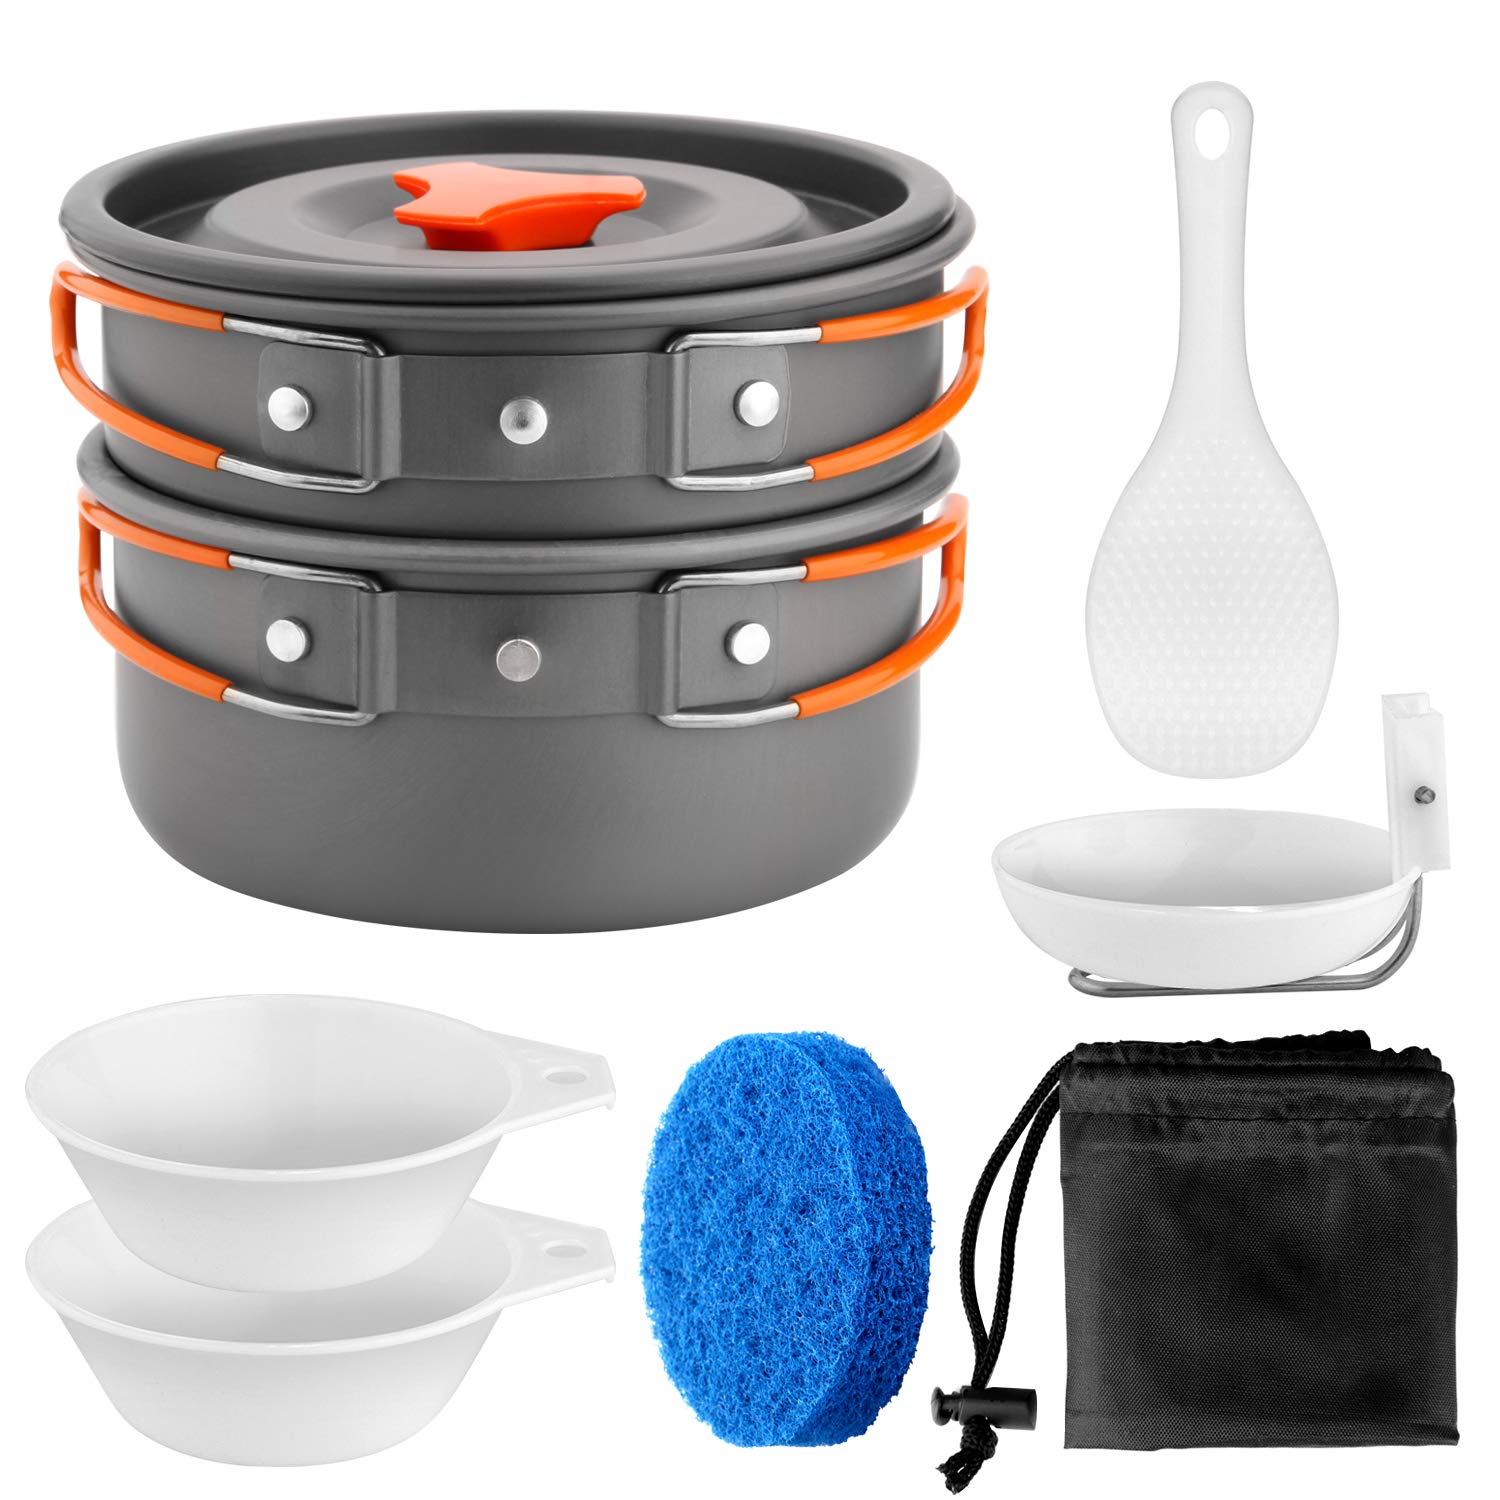 GreensKon Camping Cookware Kit,Outdoor Cooking Set Non Stick Camping Pans and Pots 2 to 3 People Backpacking,Hiking,Camping